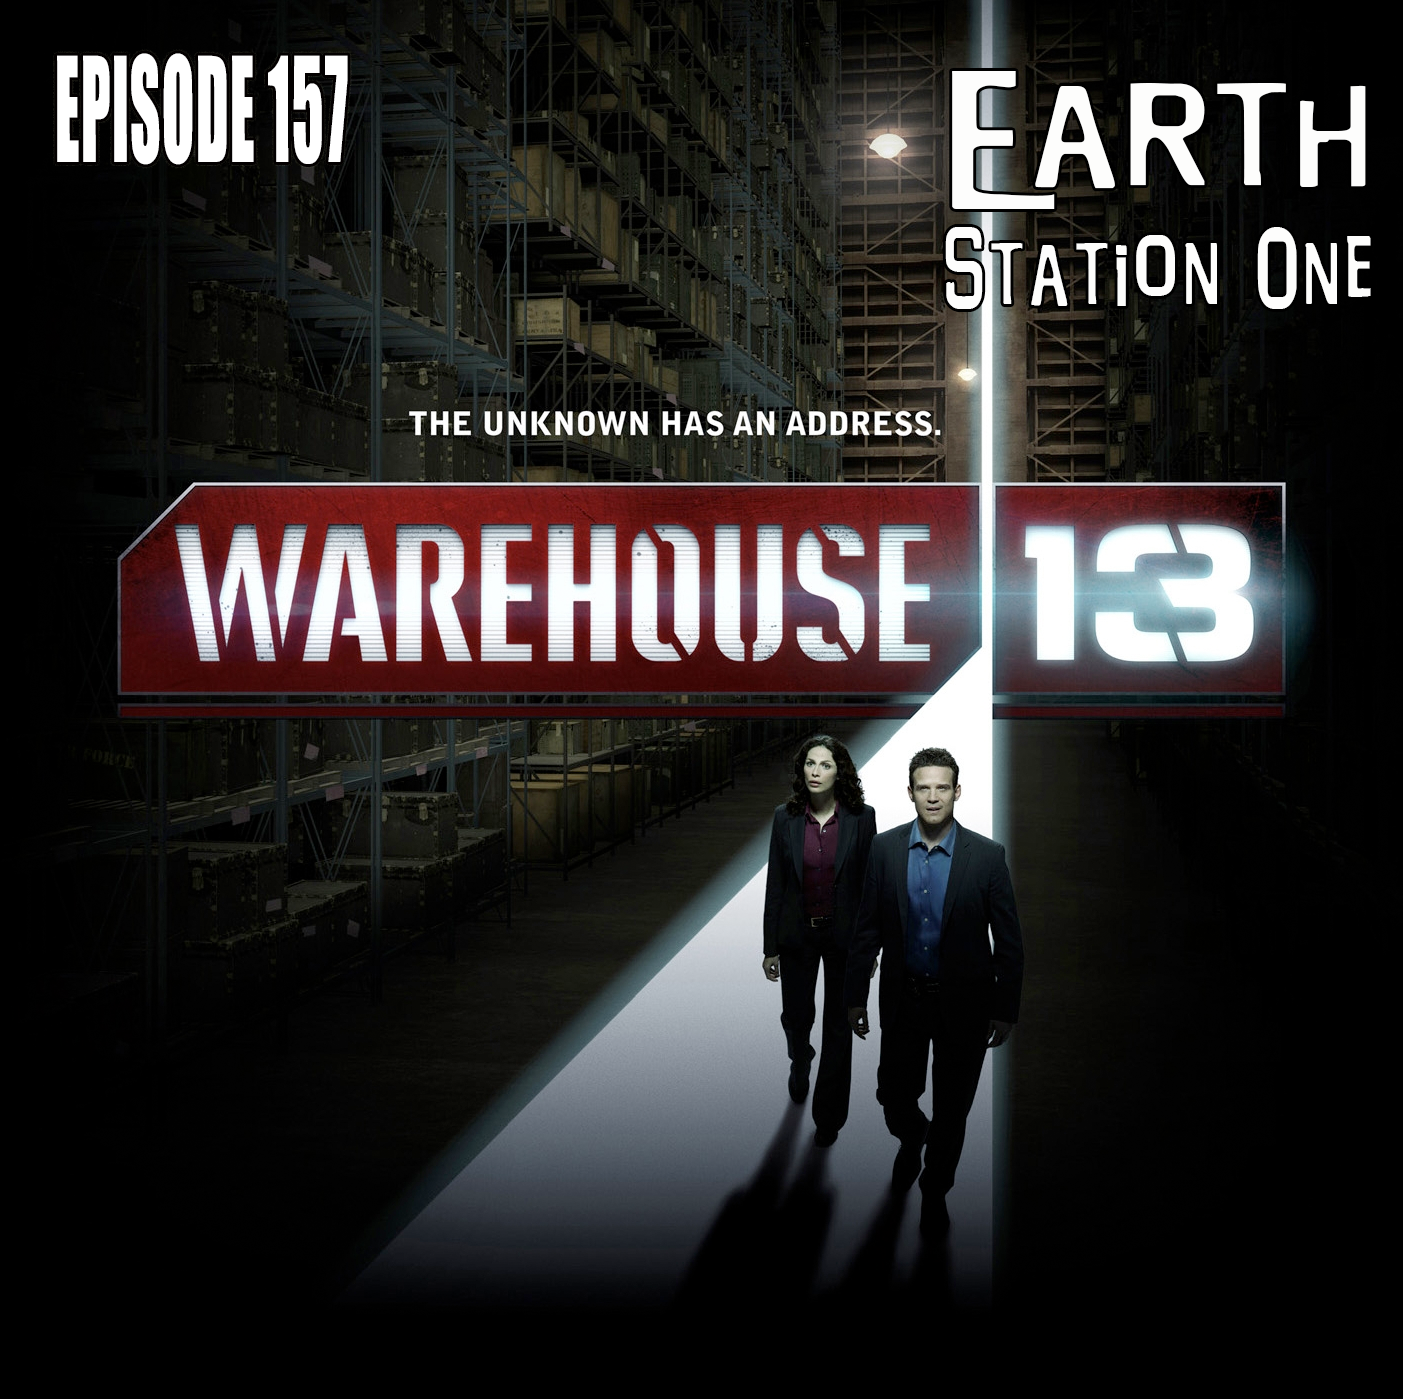 Earth Station One Episode 157